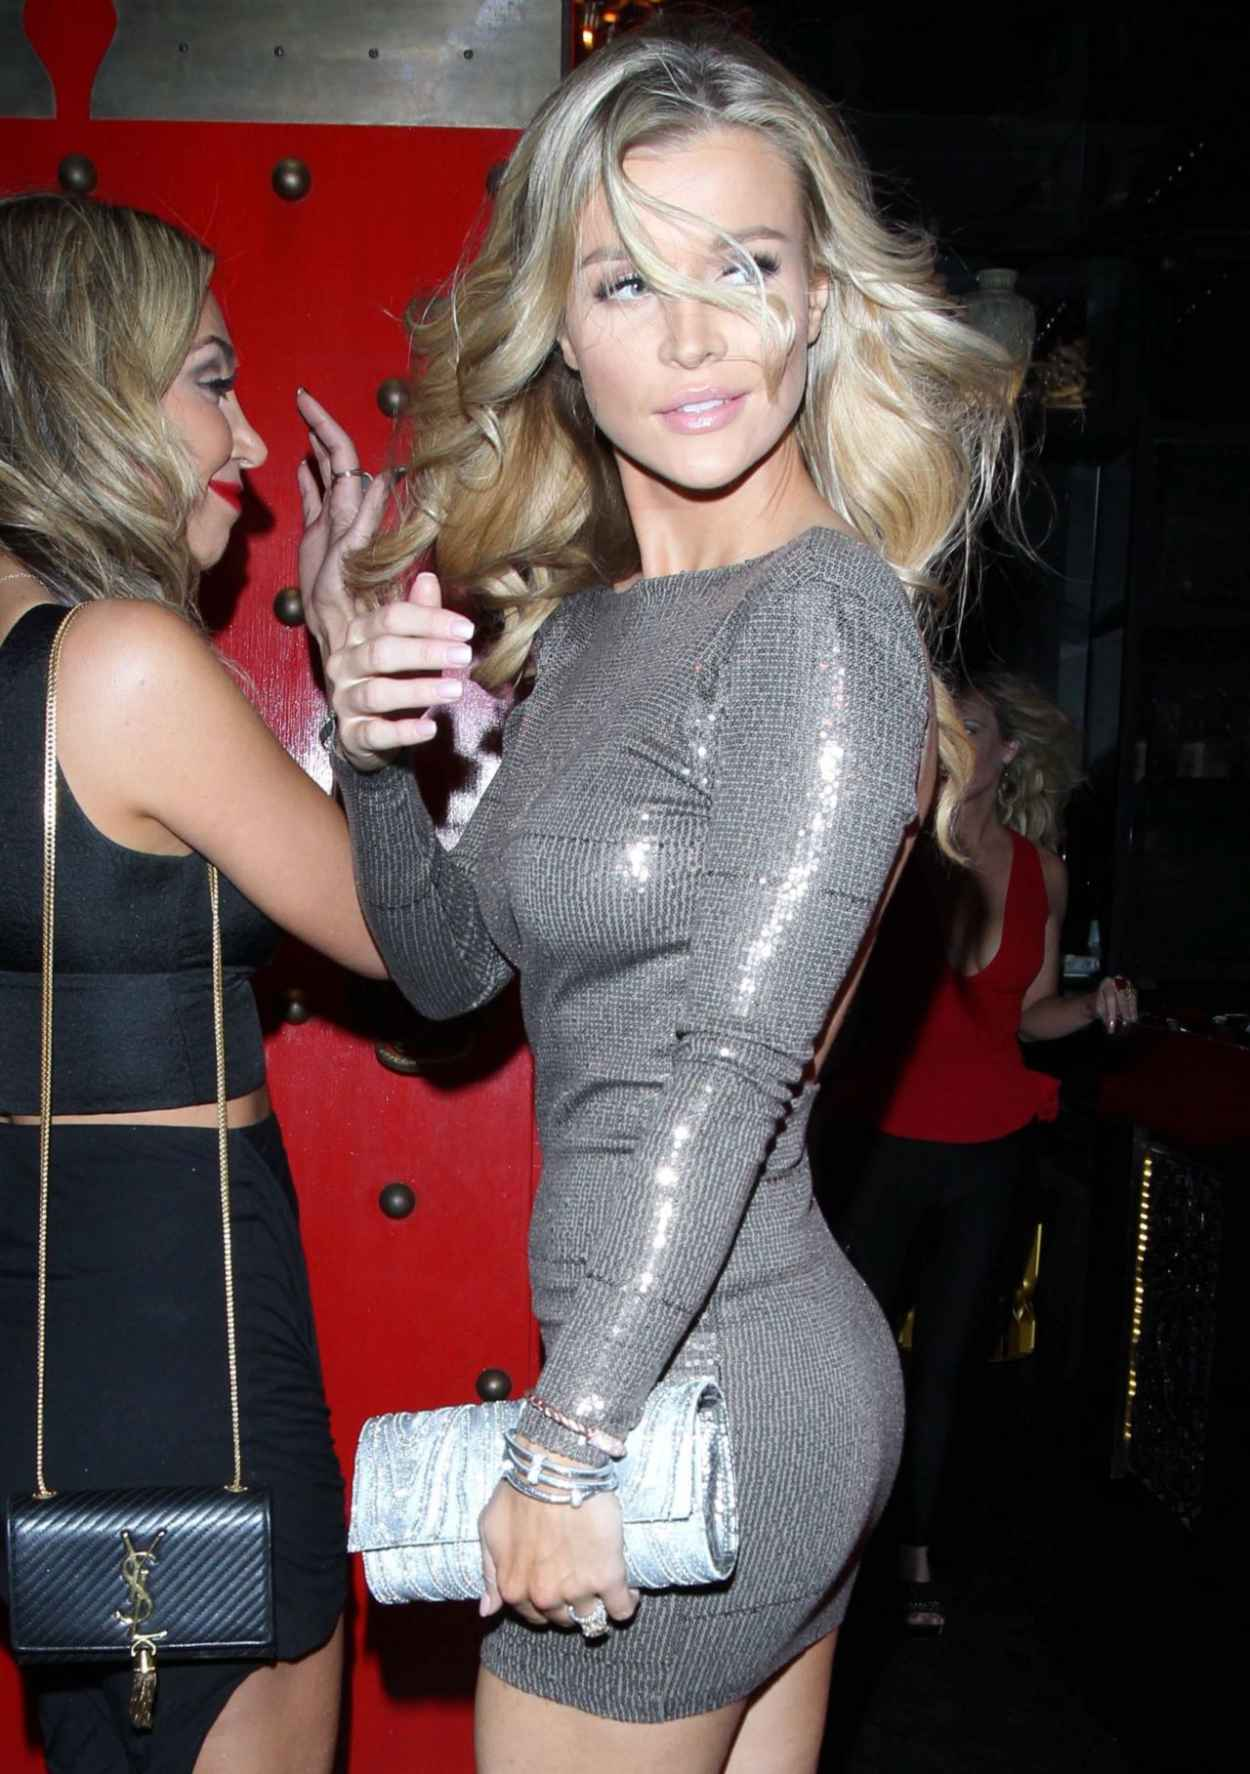 Joanna Krupa in Skintight Dress In West Hollywood - January 2015-1